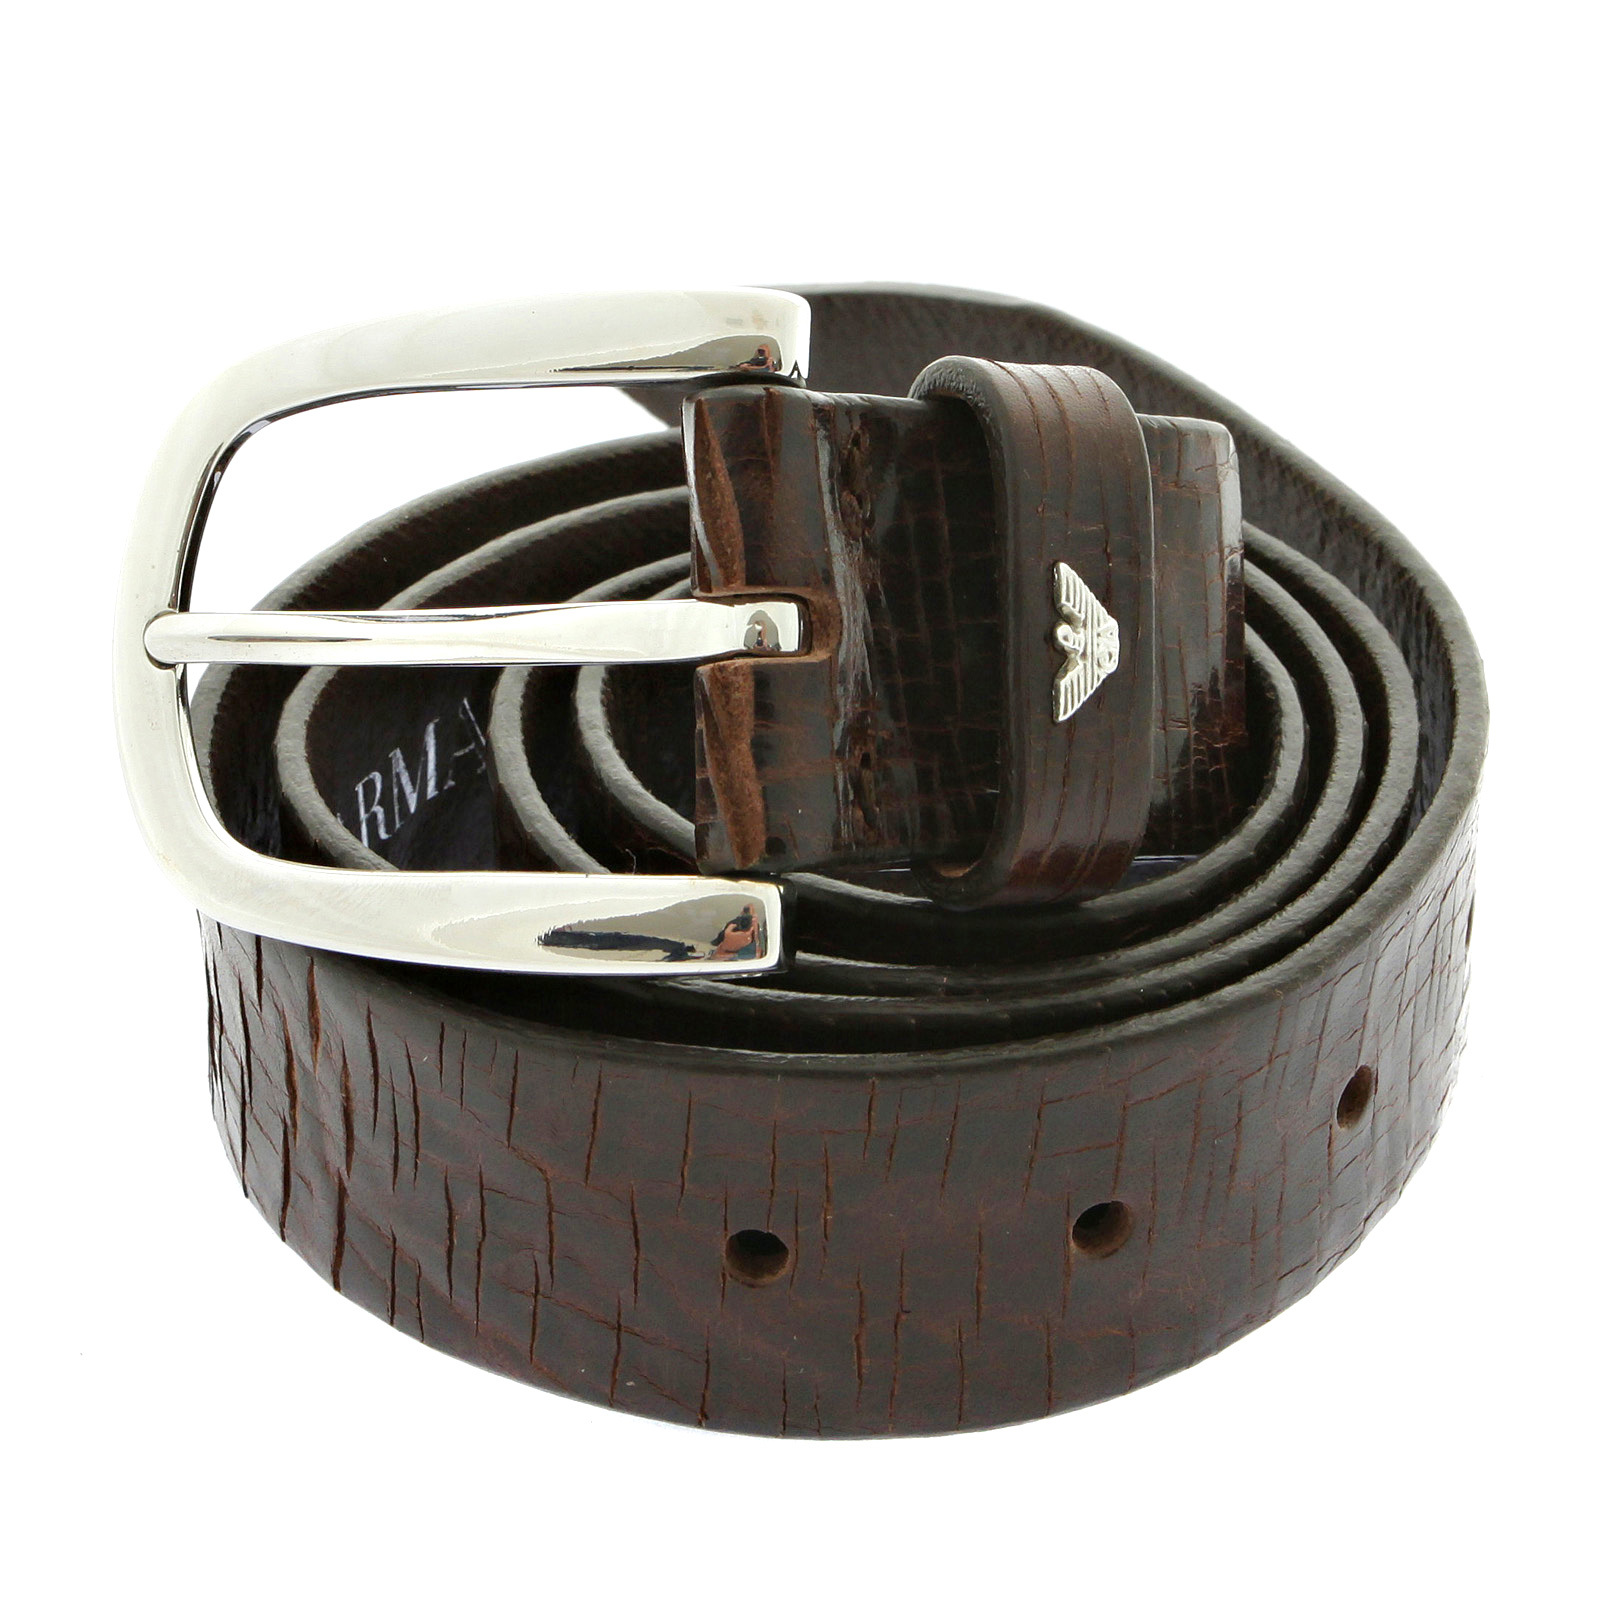 armani chocolate brown leather belt q6116 73 ajm2408